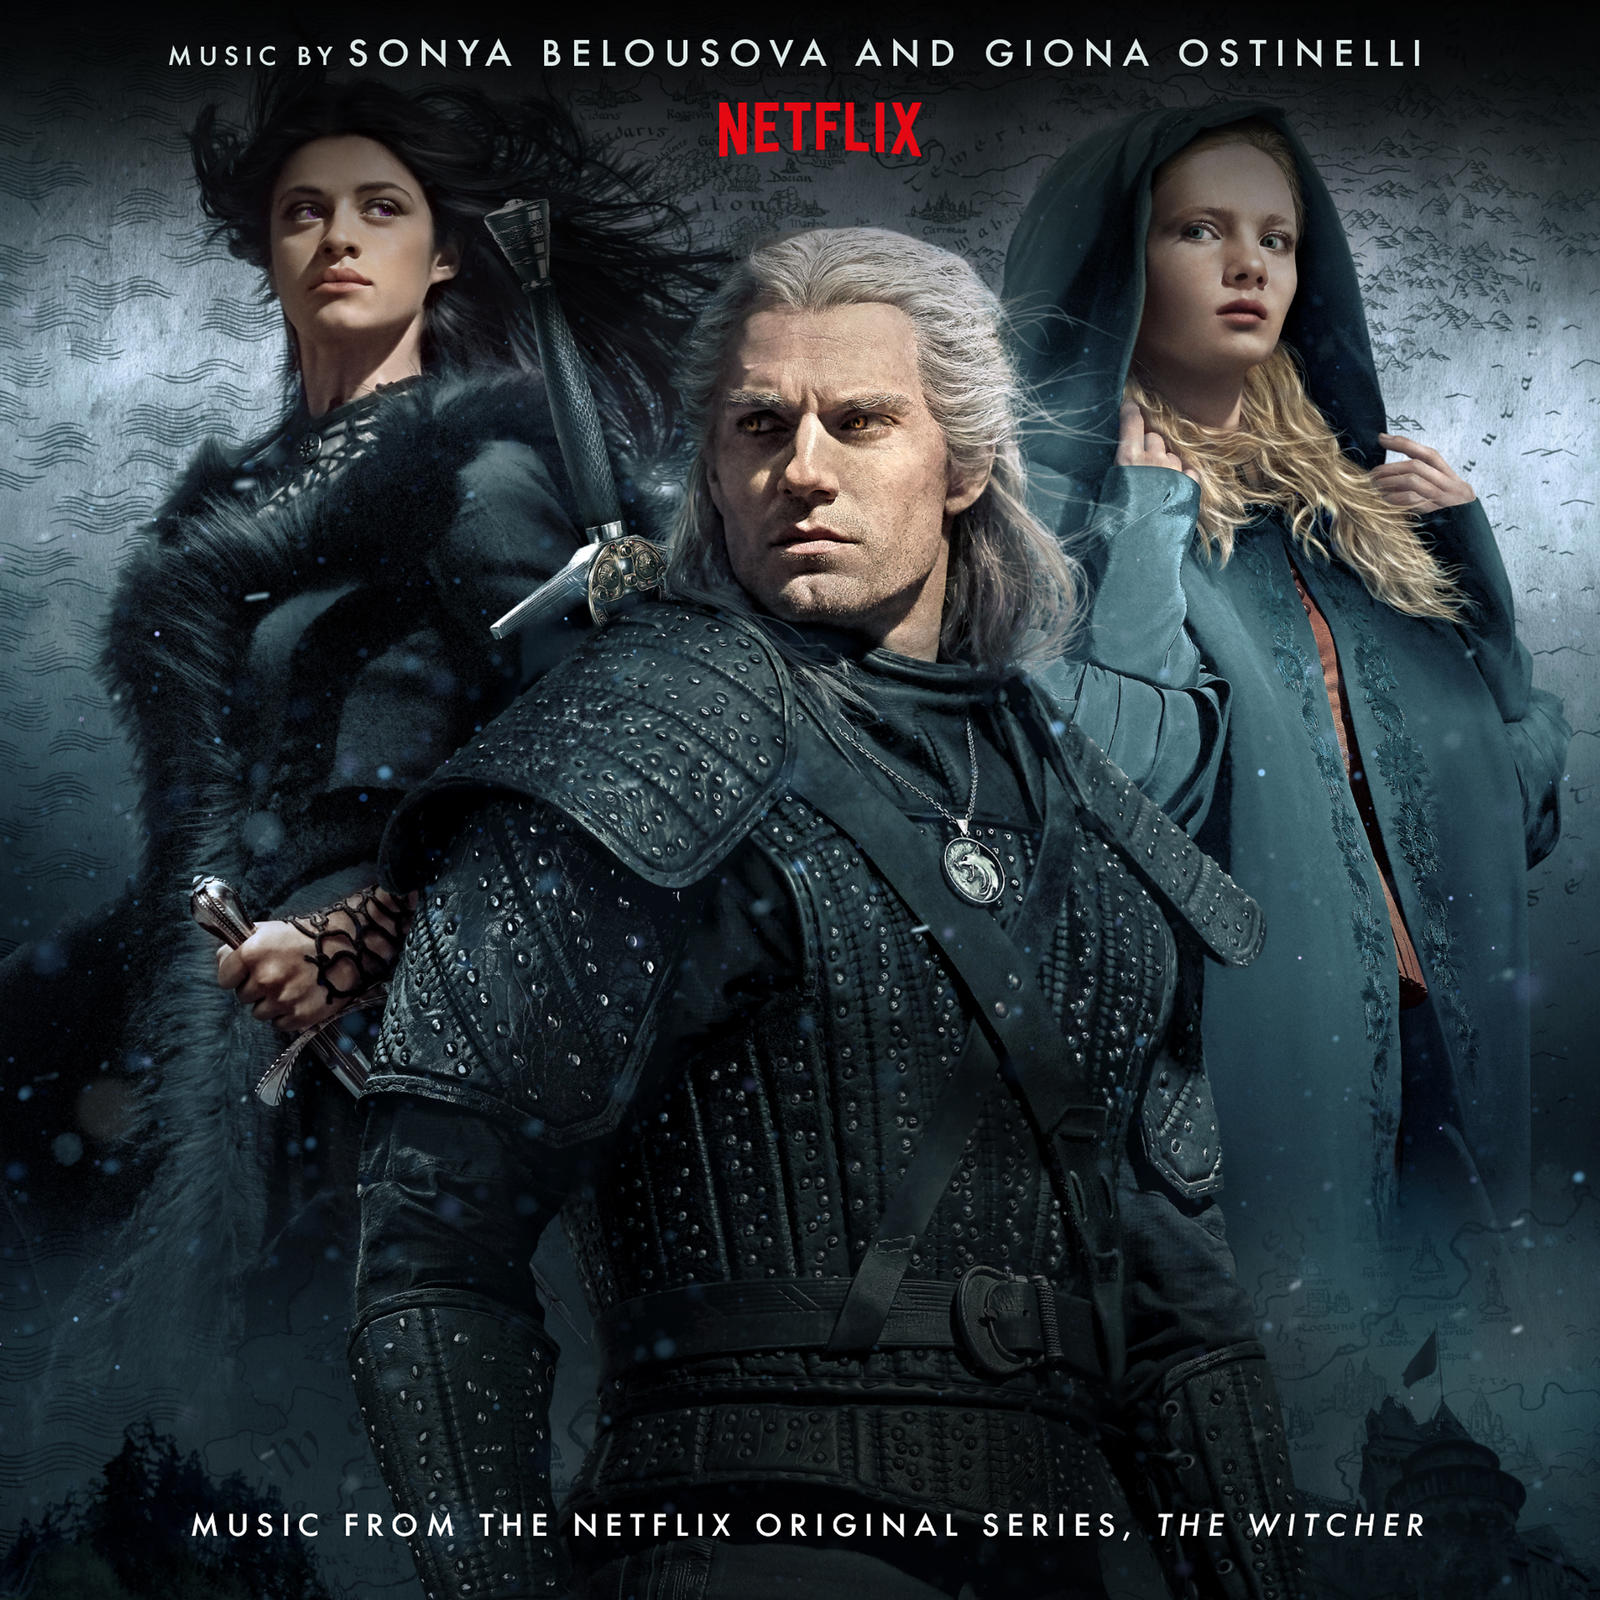 Listen To The Music from the Netflix Original Series, The Witcher!